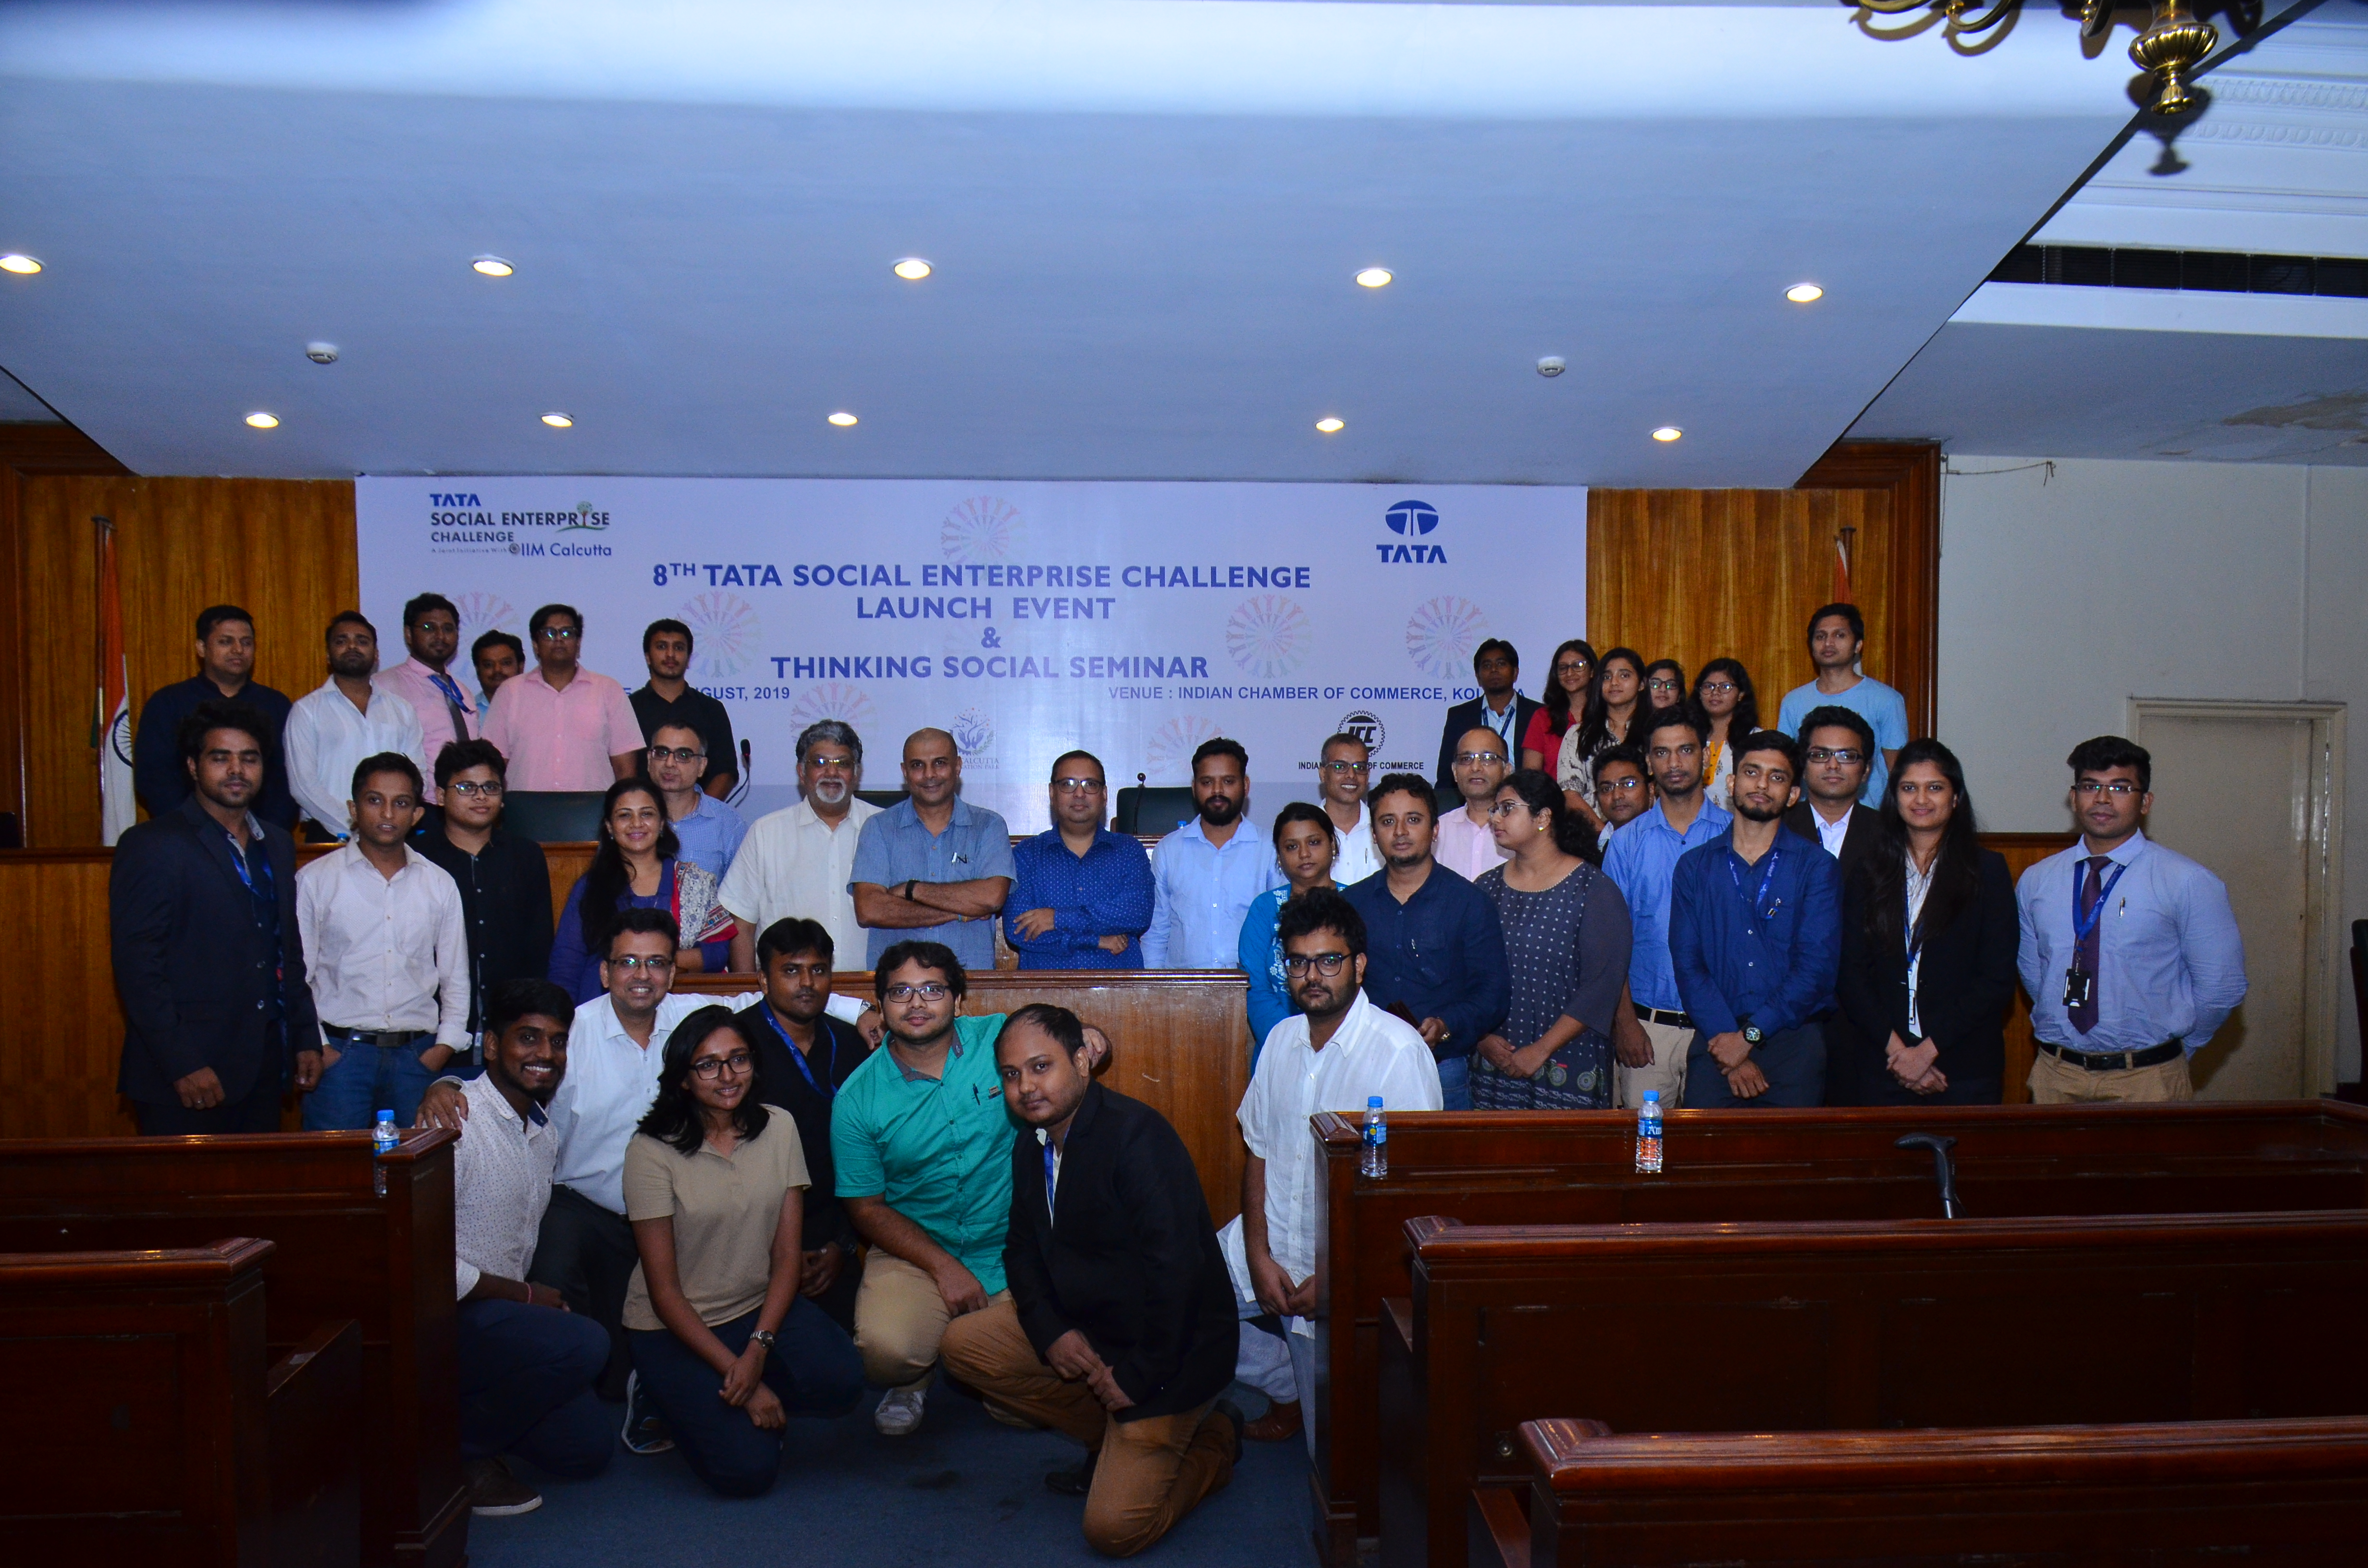 Launch of the 8th Edition of TATA Social Enterprise Challenge